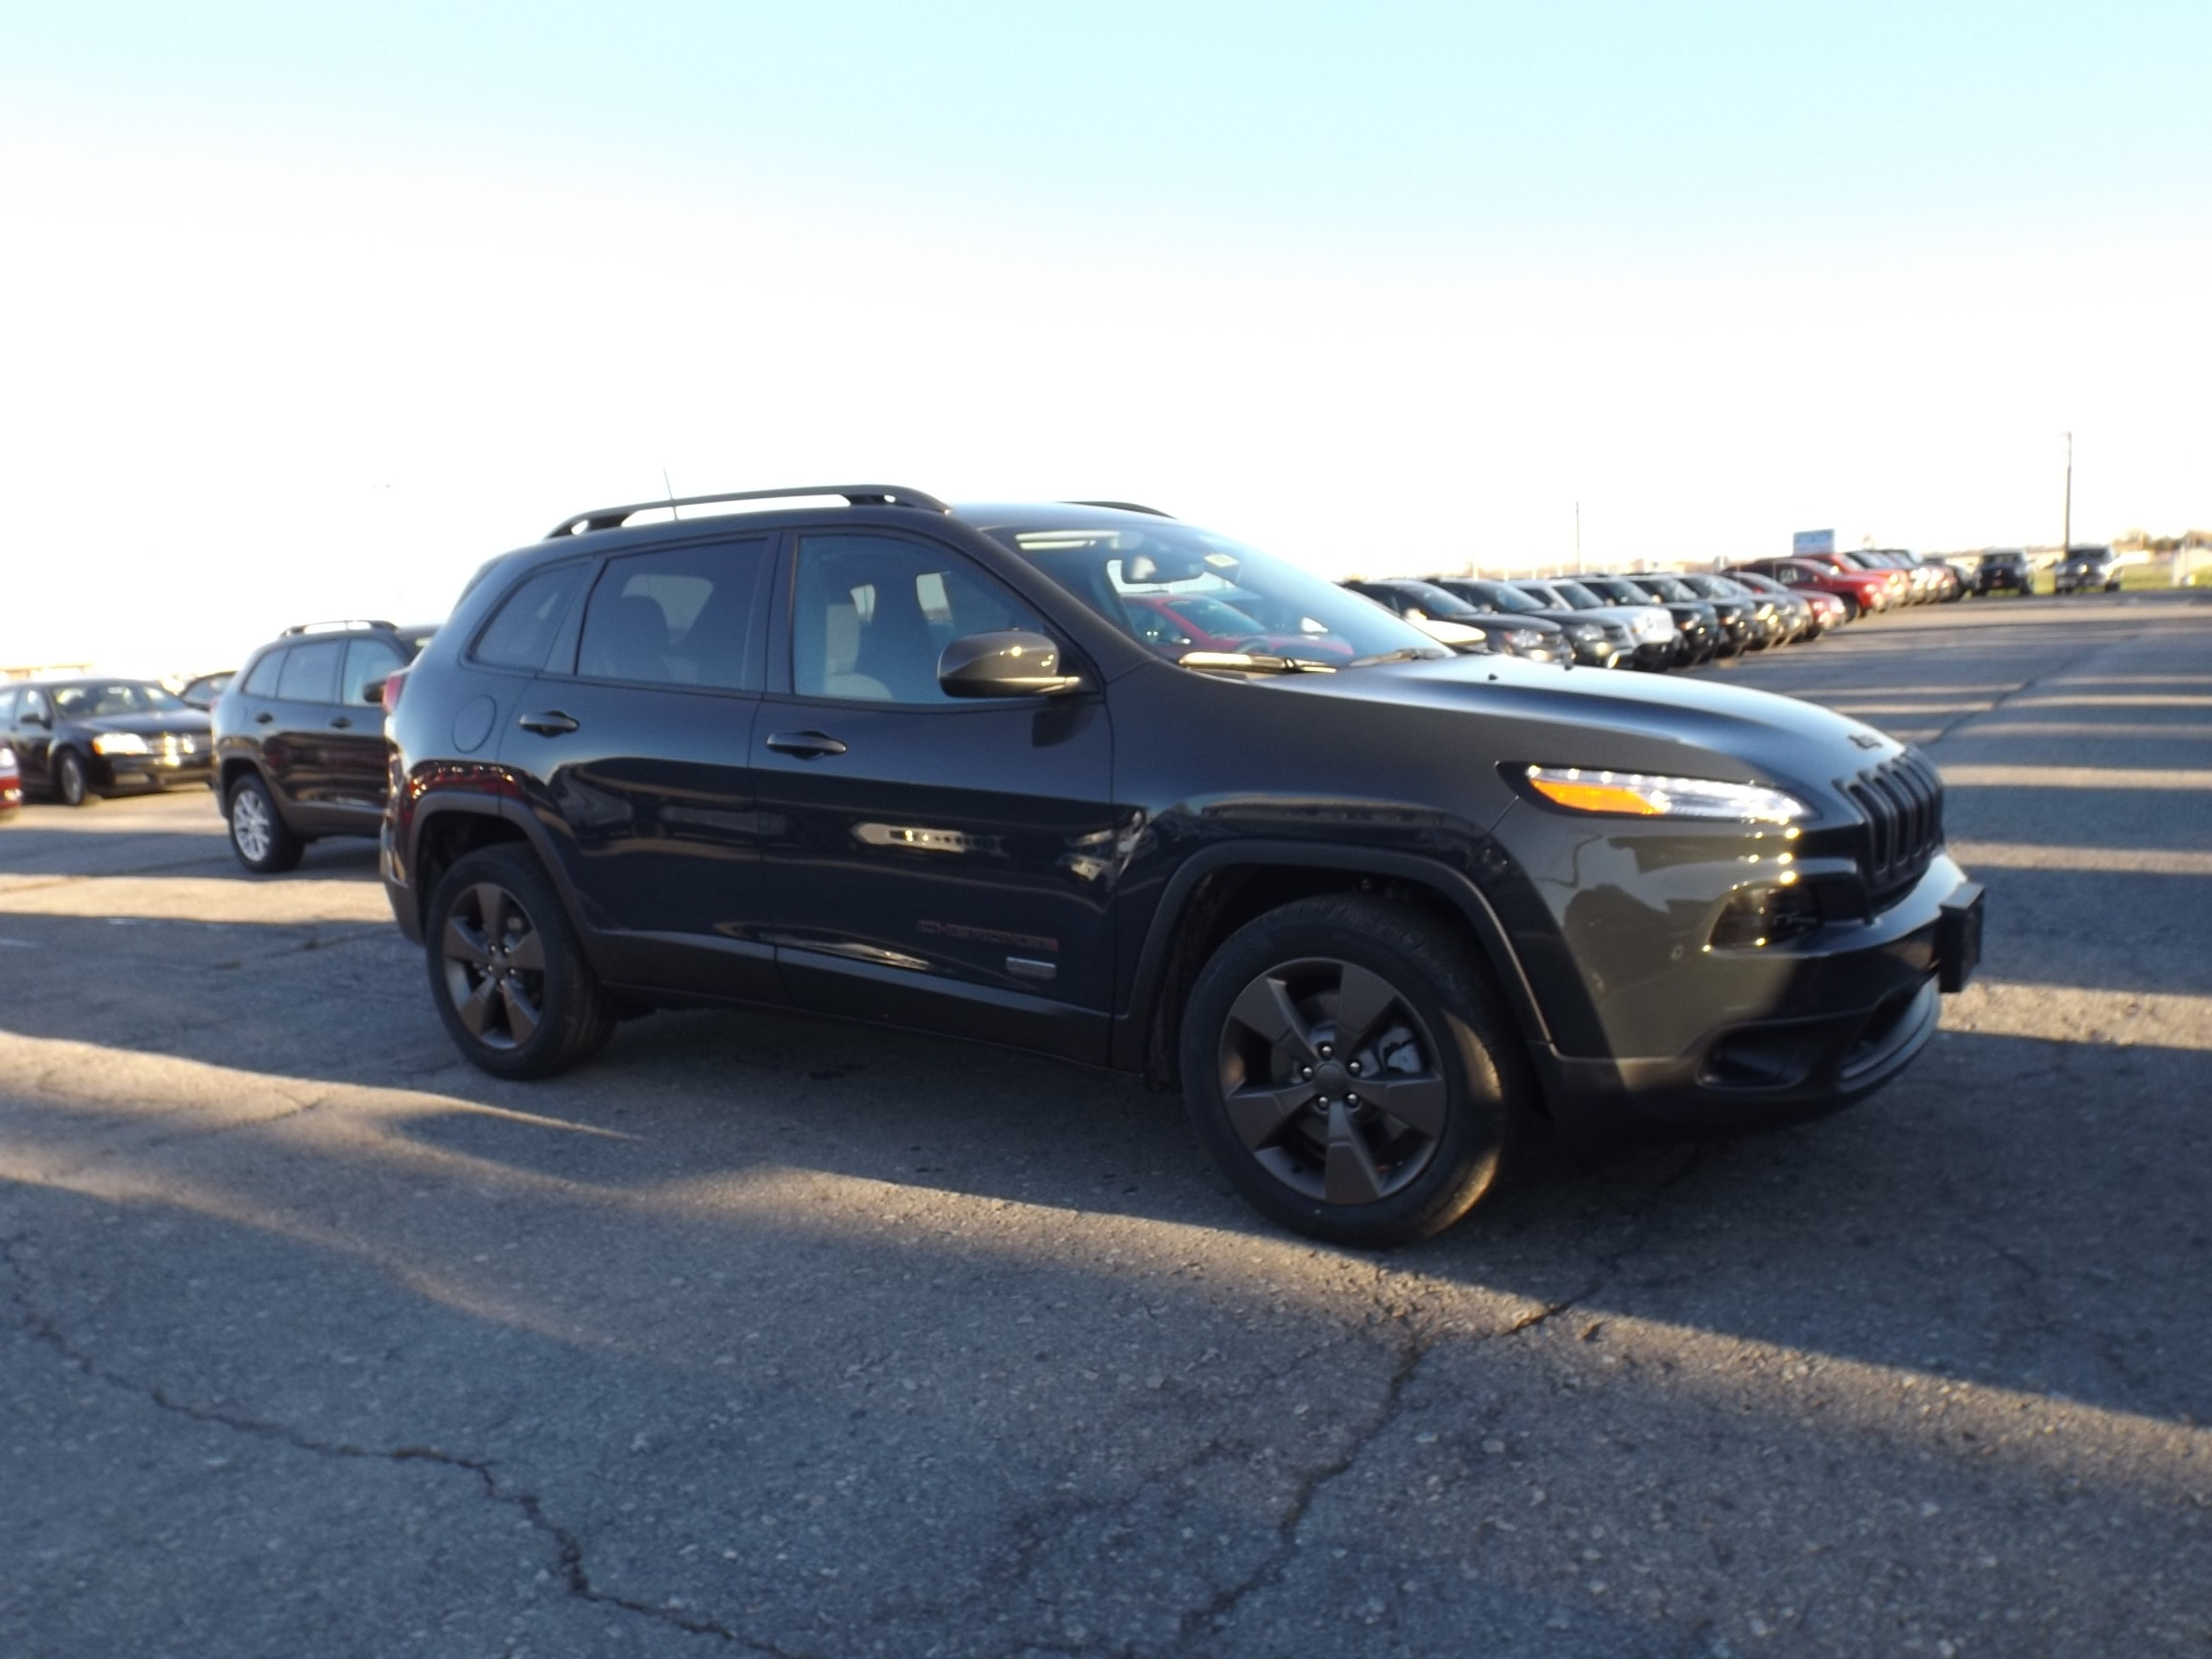 2017 Jeep Cherokee USave Rental Car SUV